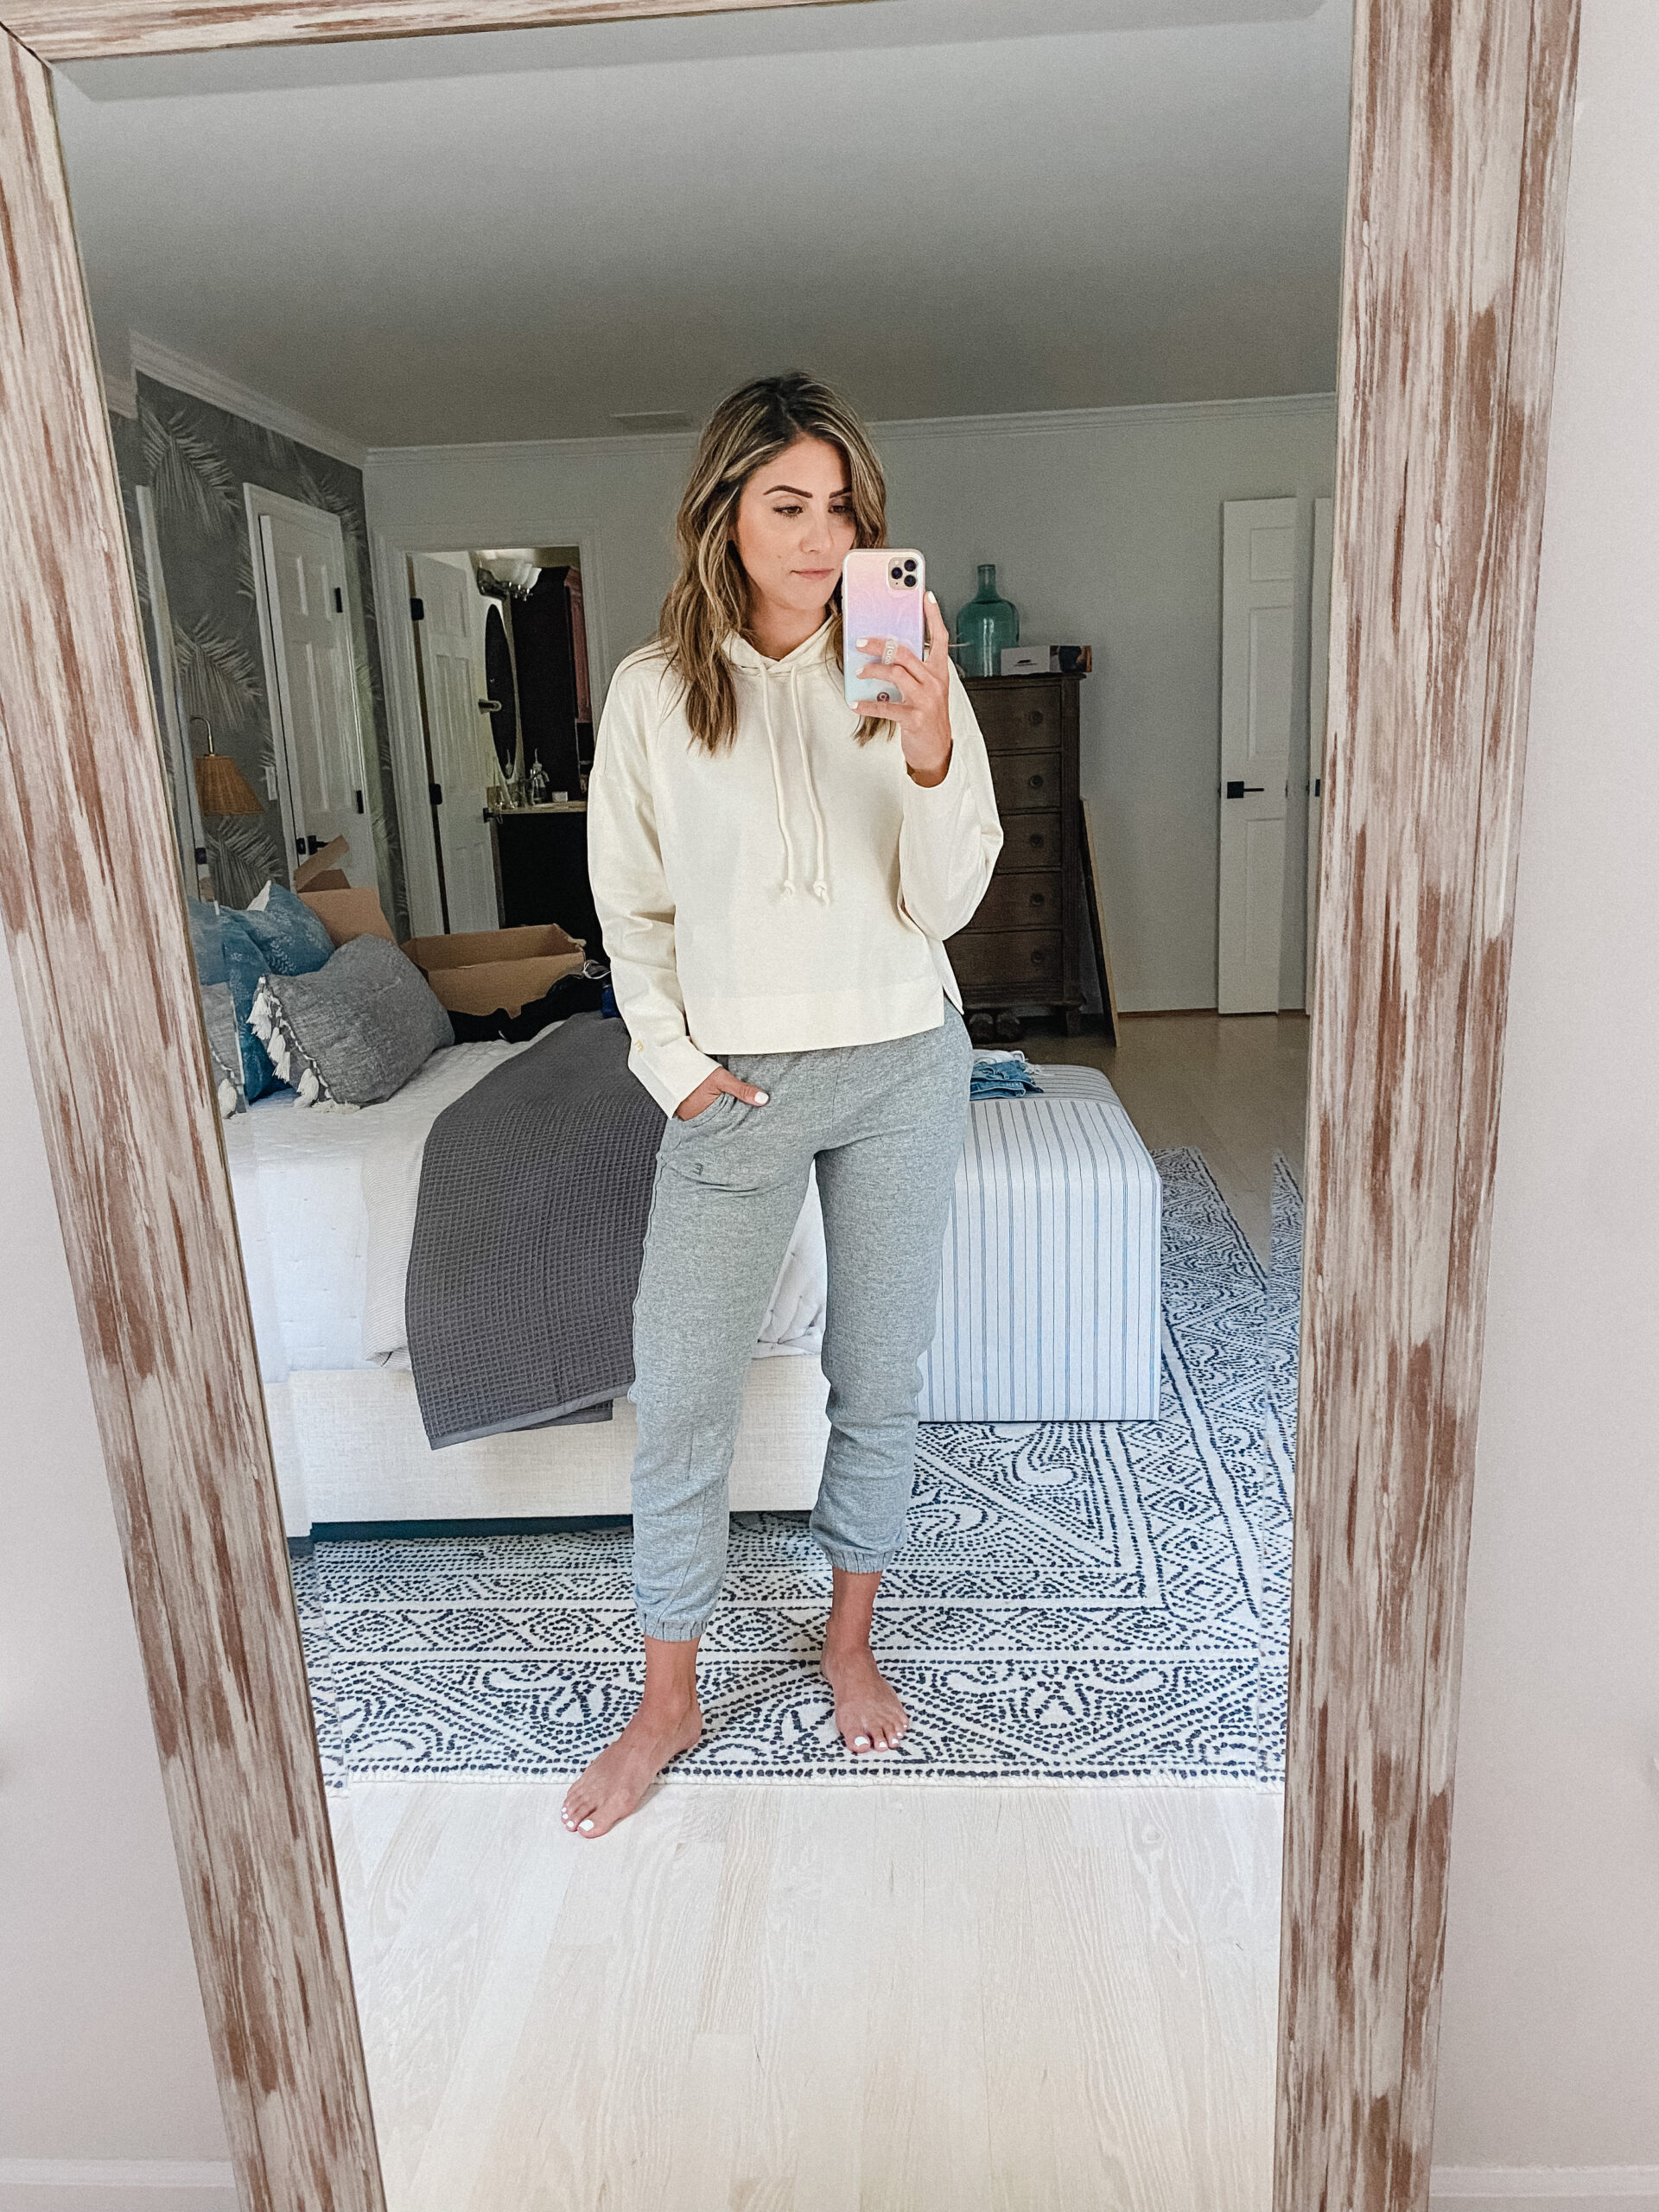 Connecticut life and style blogger Lauren McBride shares an Everlane try on featuring classic items for your summer closet.